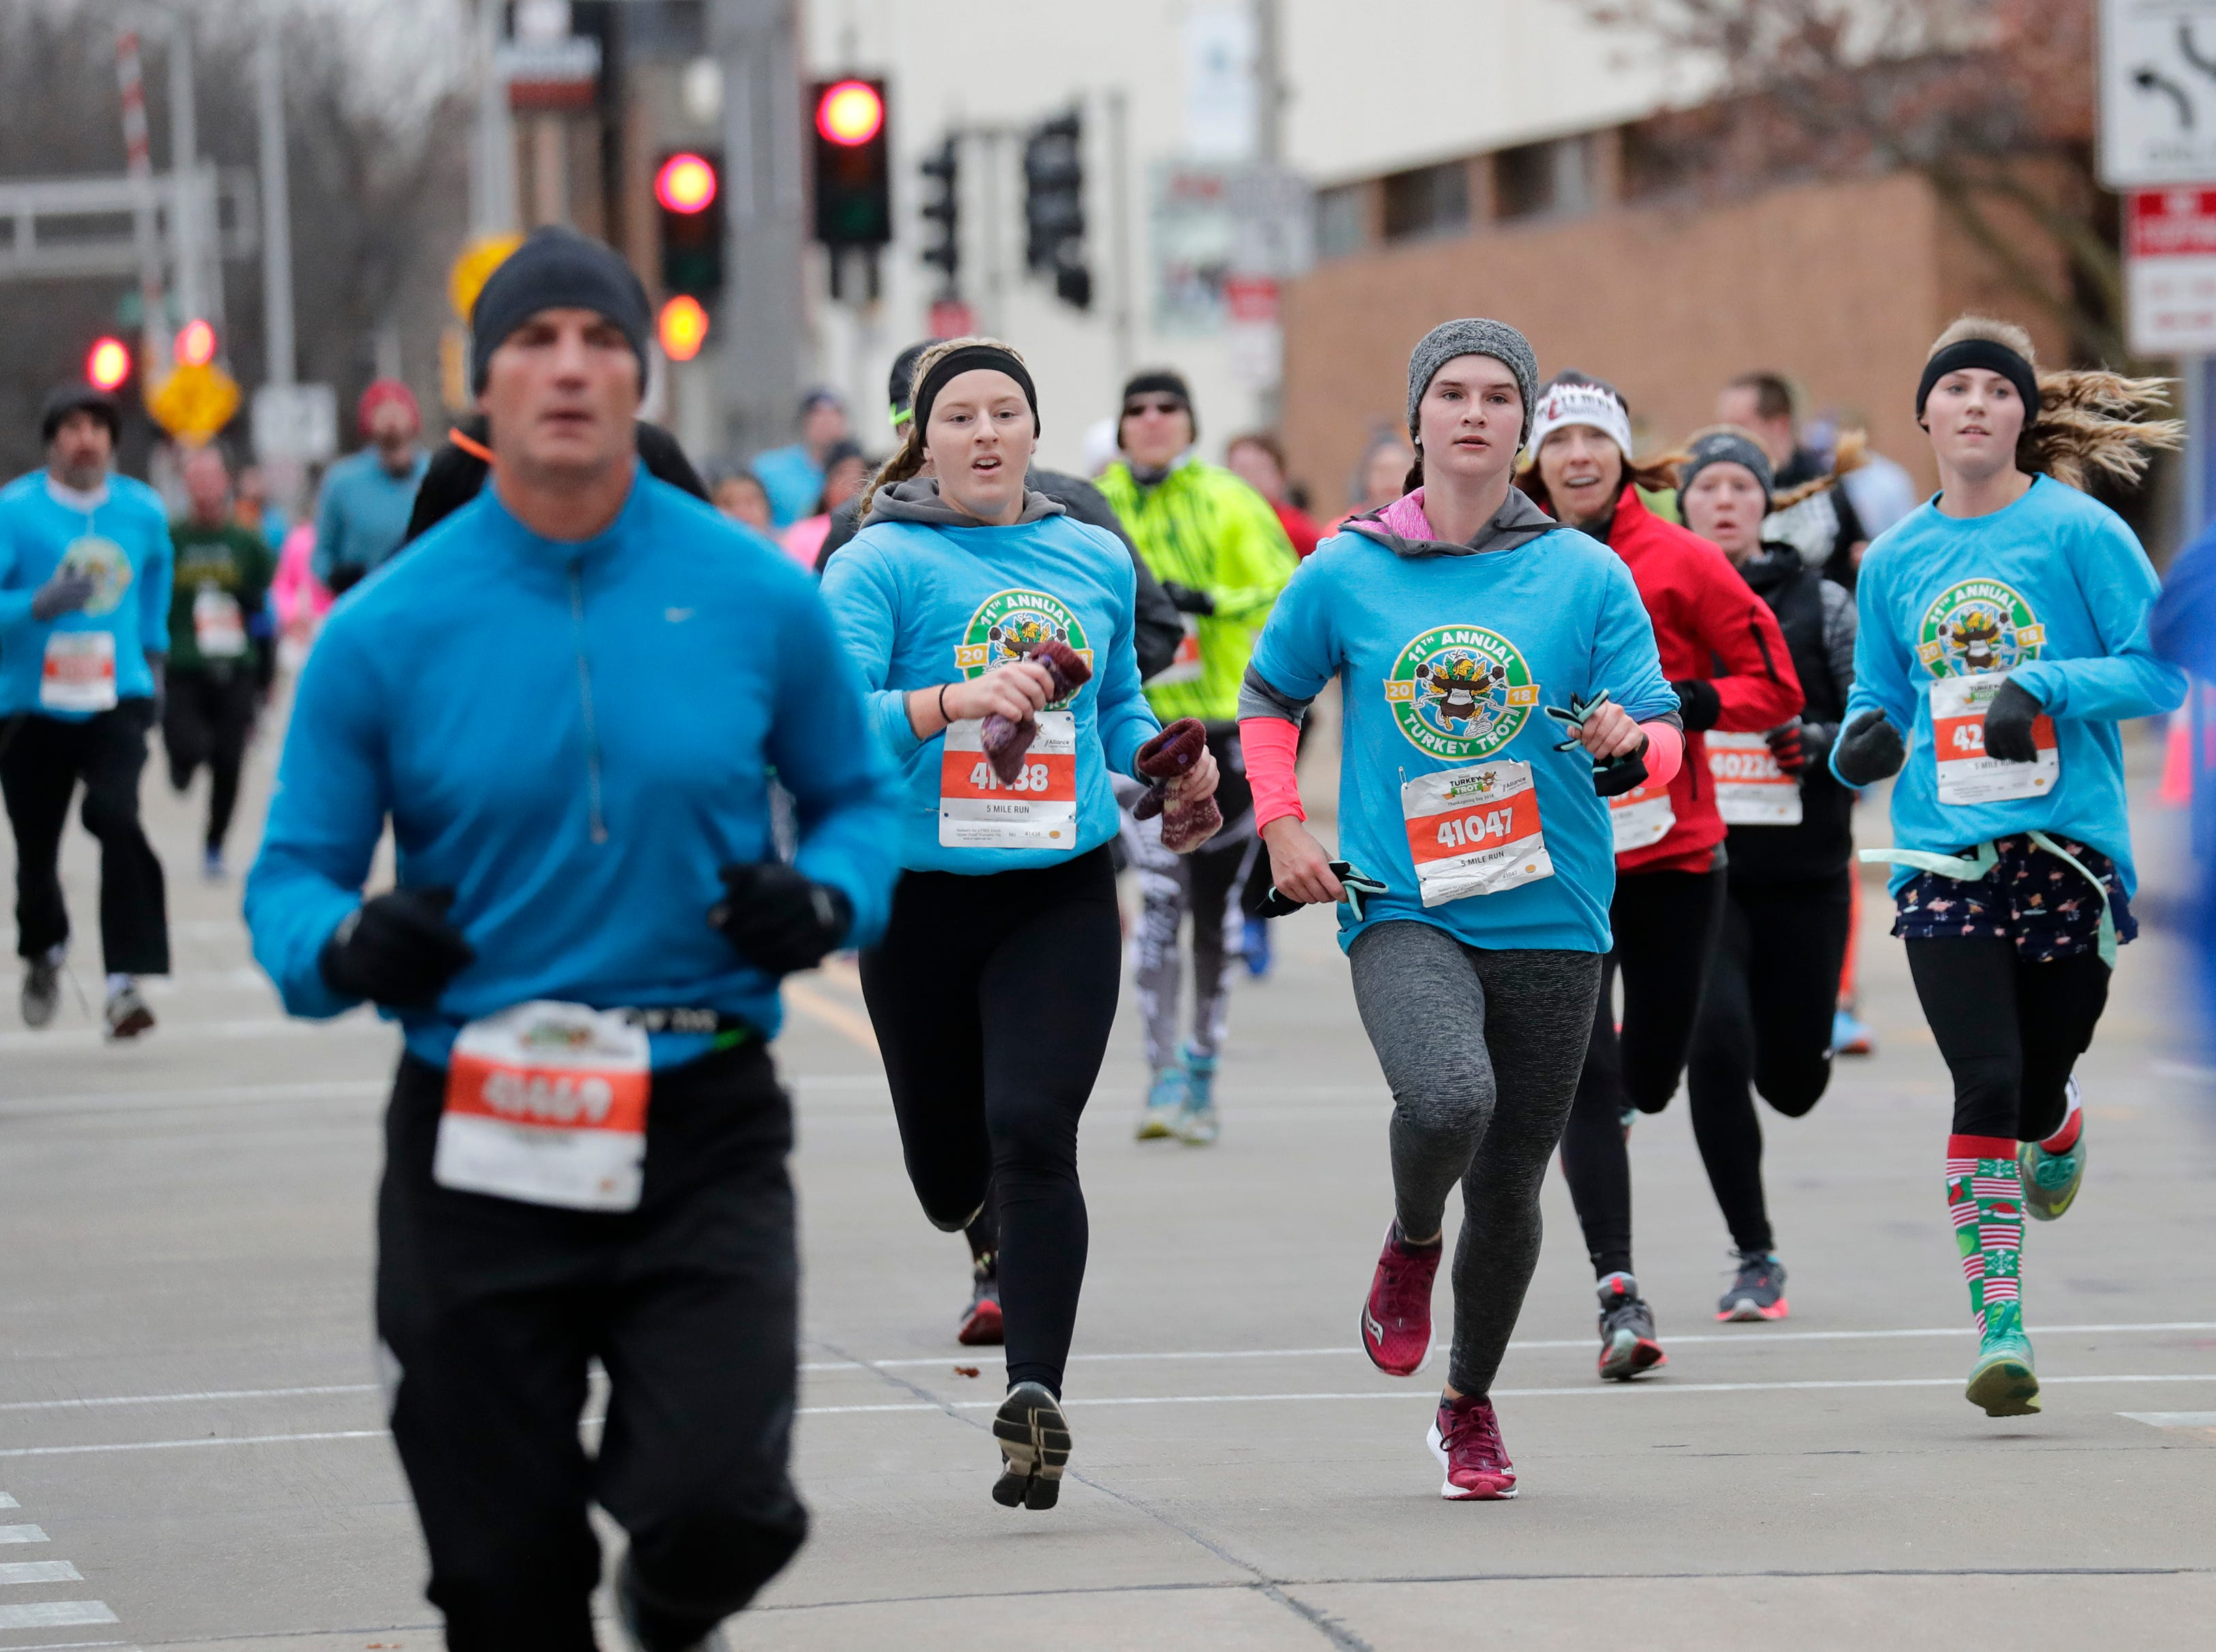 People particpate in the 11th Annual Festival Foods Turkey Trot Thursday, November 22, 2018, in Appleton, Wis. 